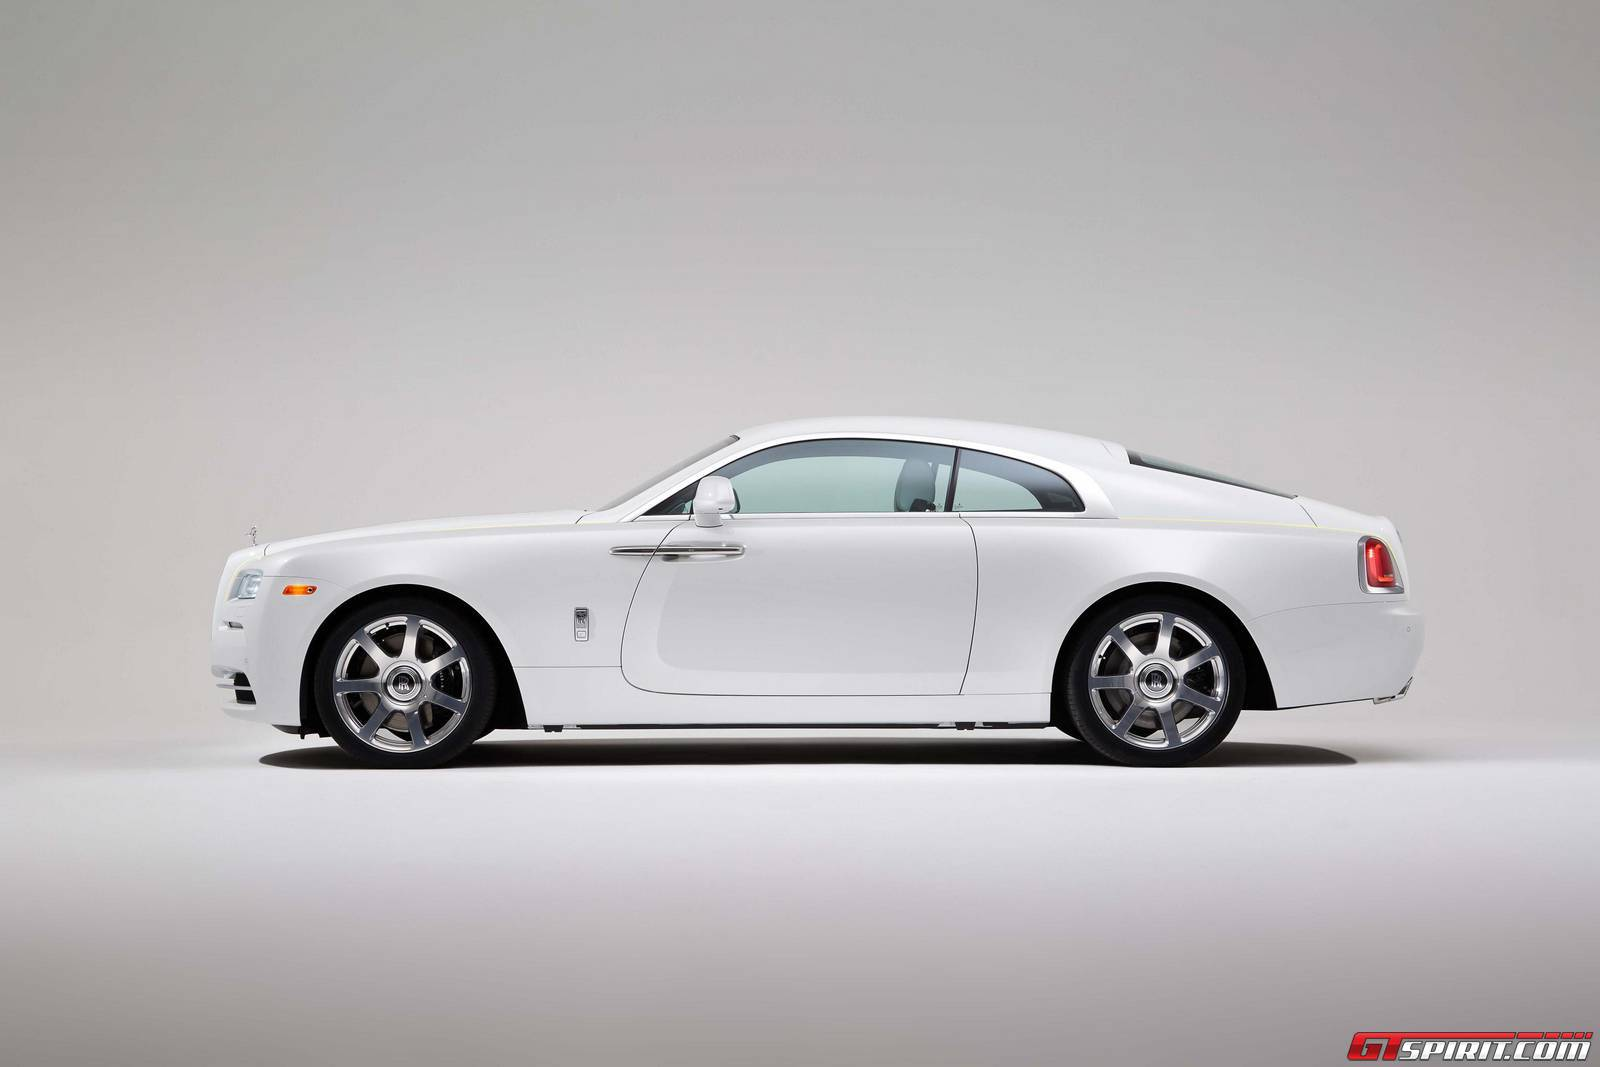 Official: 2016 Rolls-Royce Wraith Inspired By Fashion